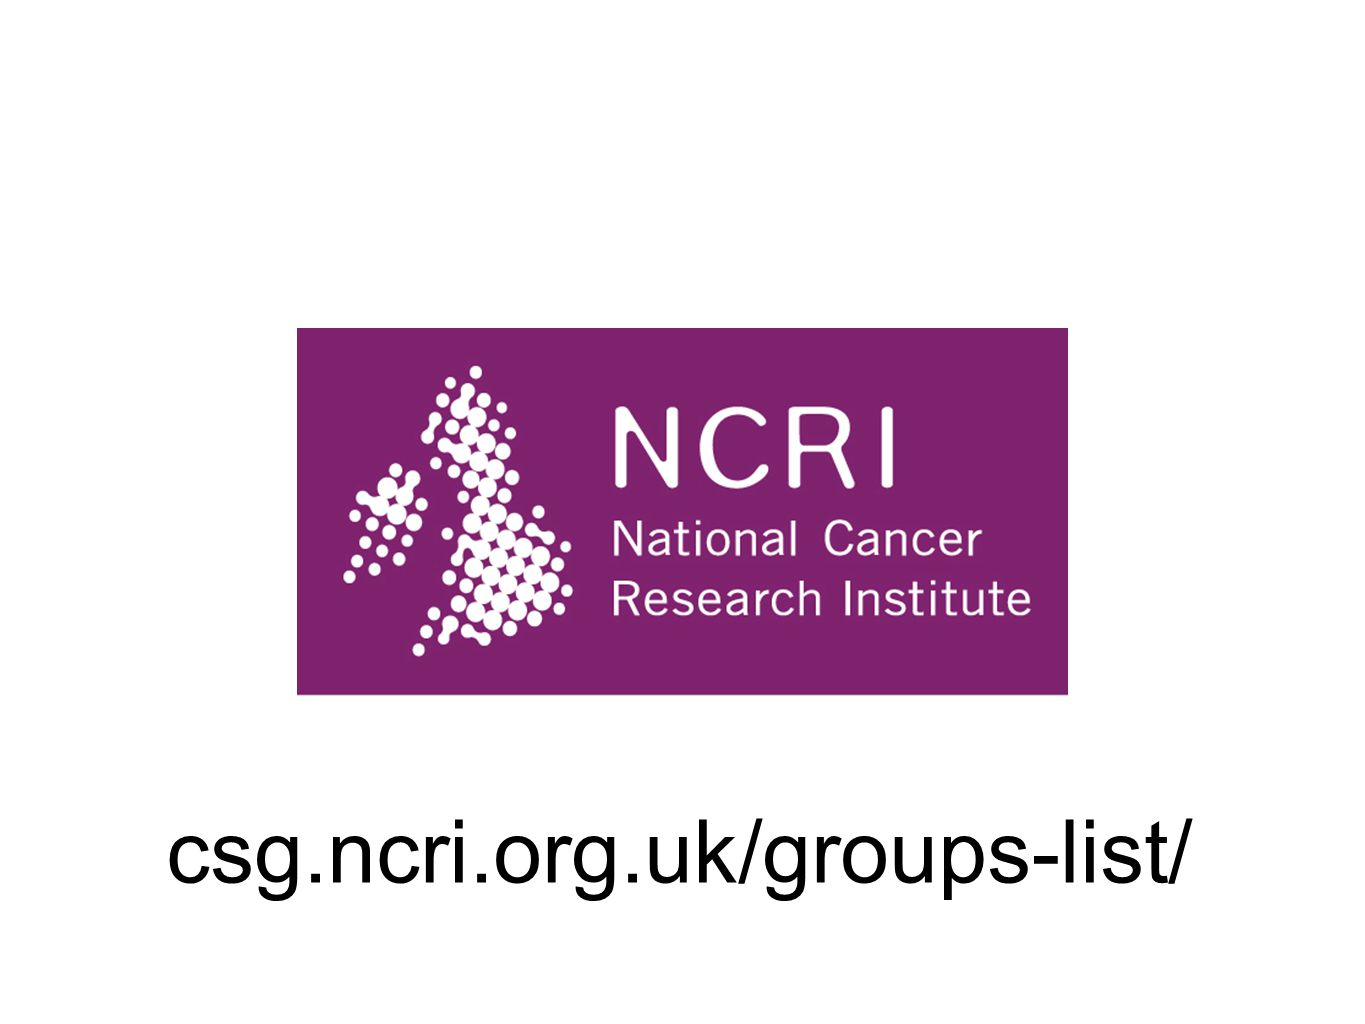 csg.ncri.org.uk/groups-list/